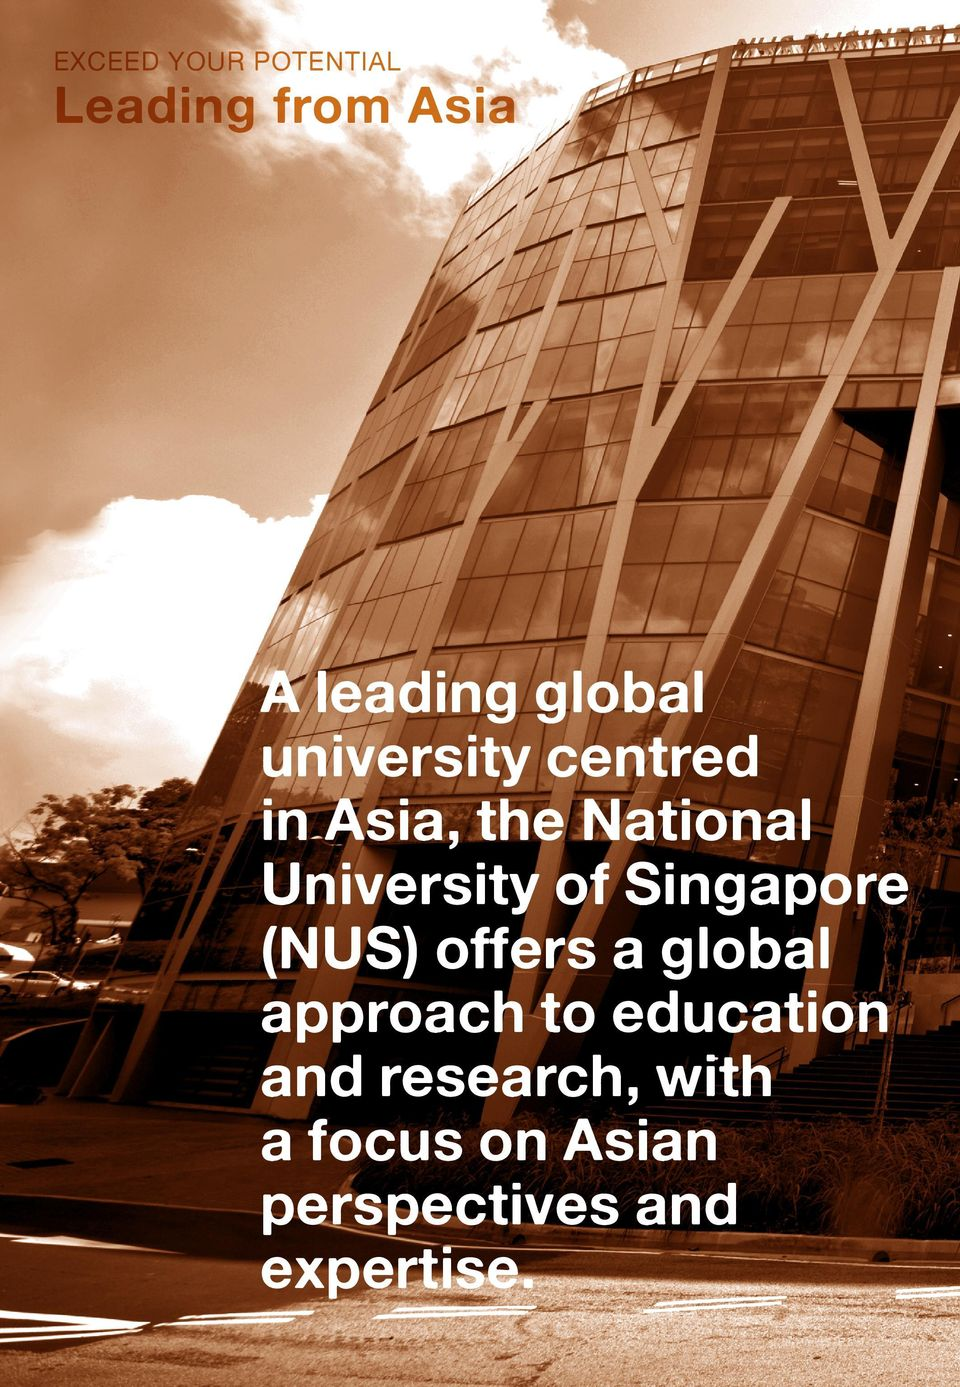 Singapore (NUS) offers a global approach to education and